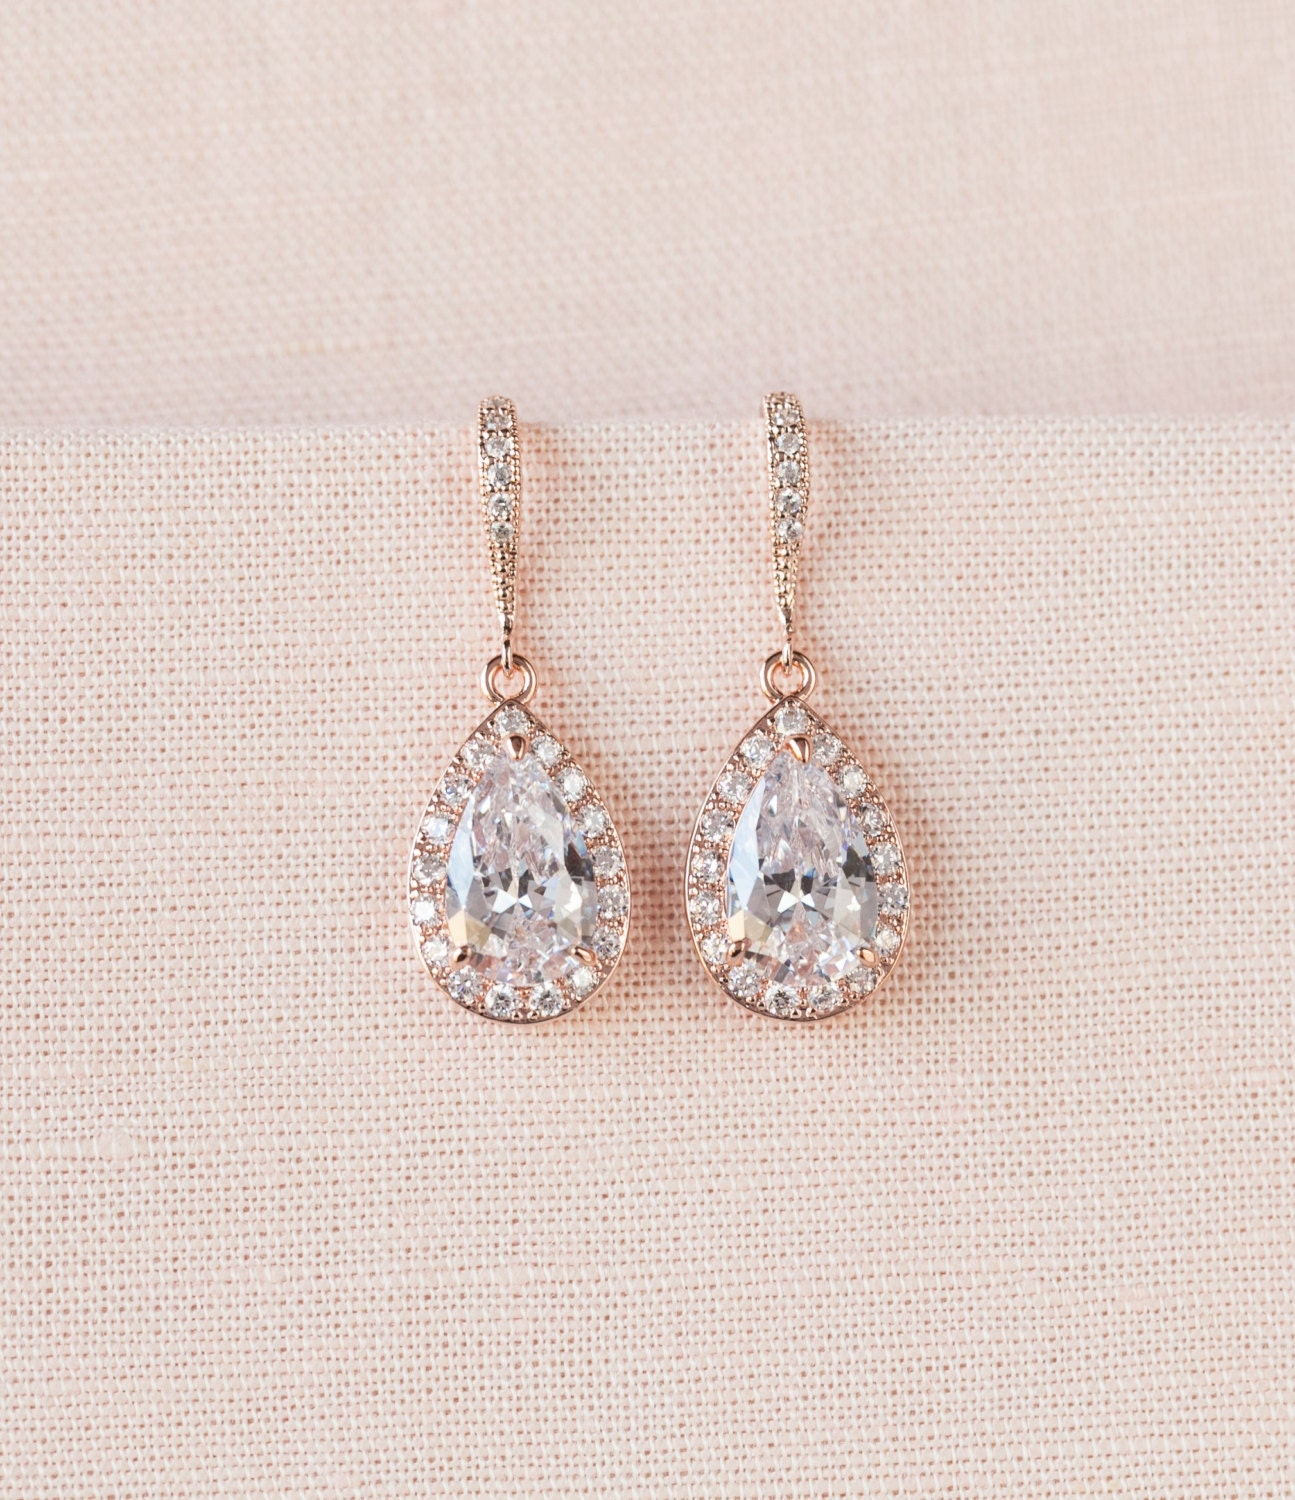 Rose Gold Bridal earrings, Pink Gold Wedding jewelry, Swarovski Crystal Wedding earrings Bridal jewelry, Ariel Drop Earrings